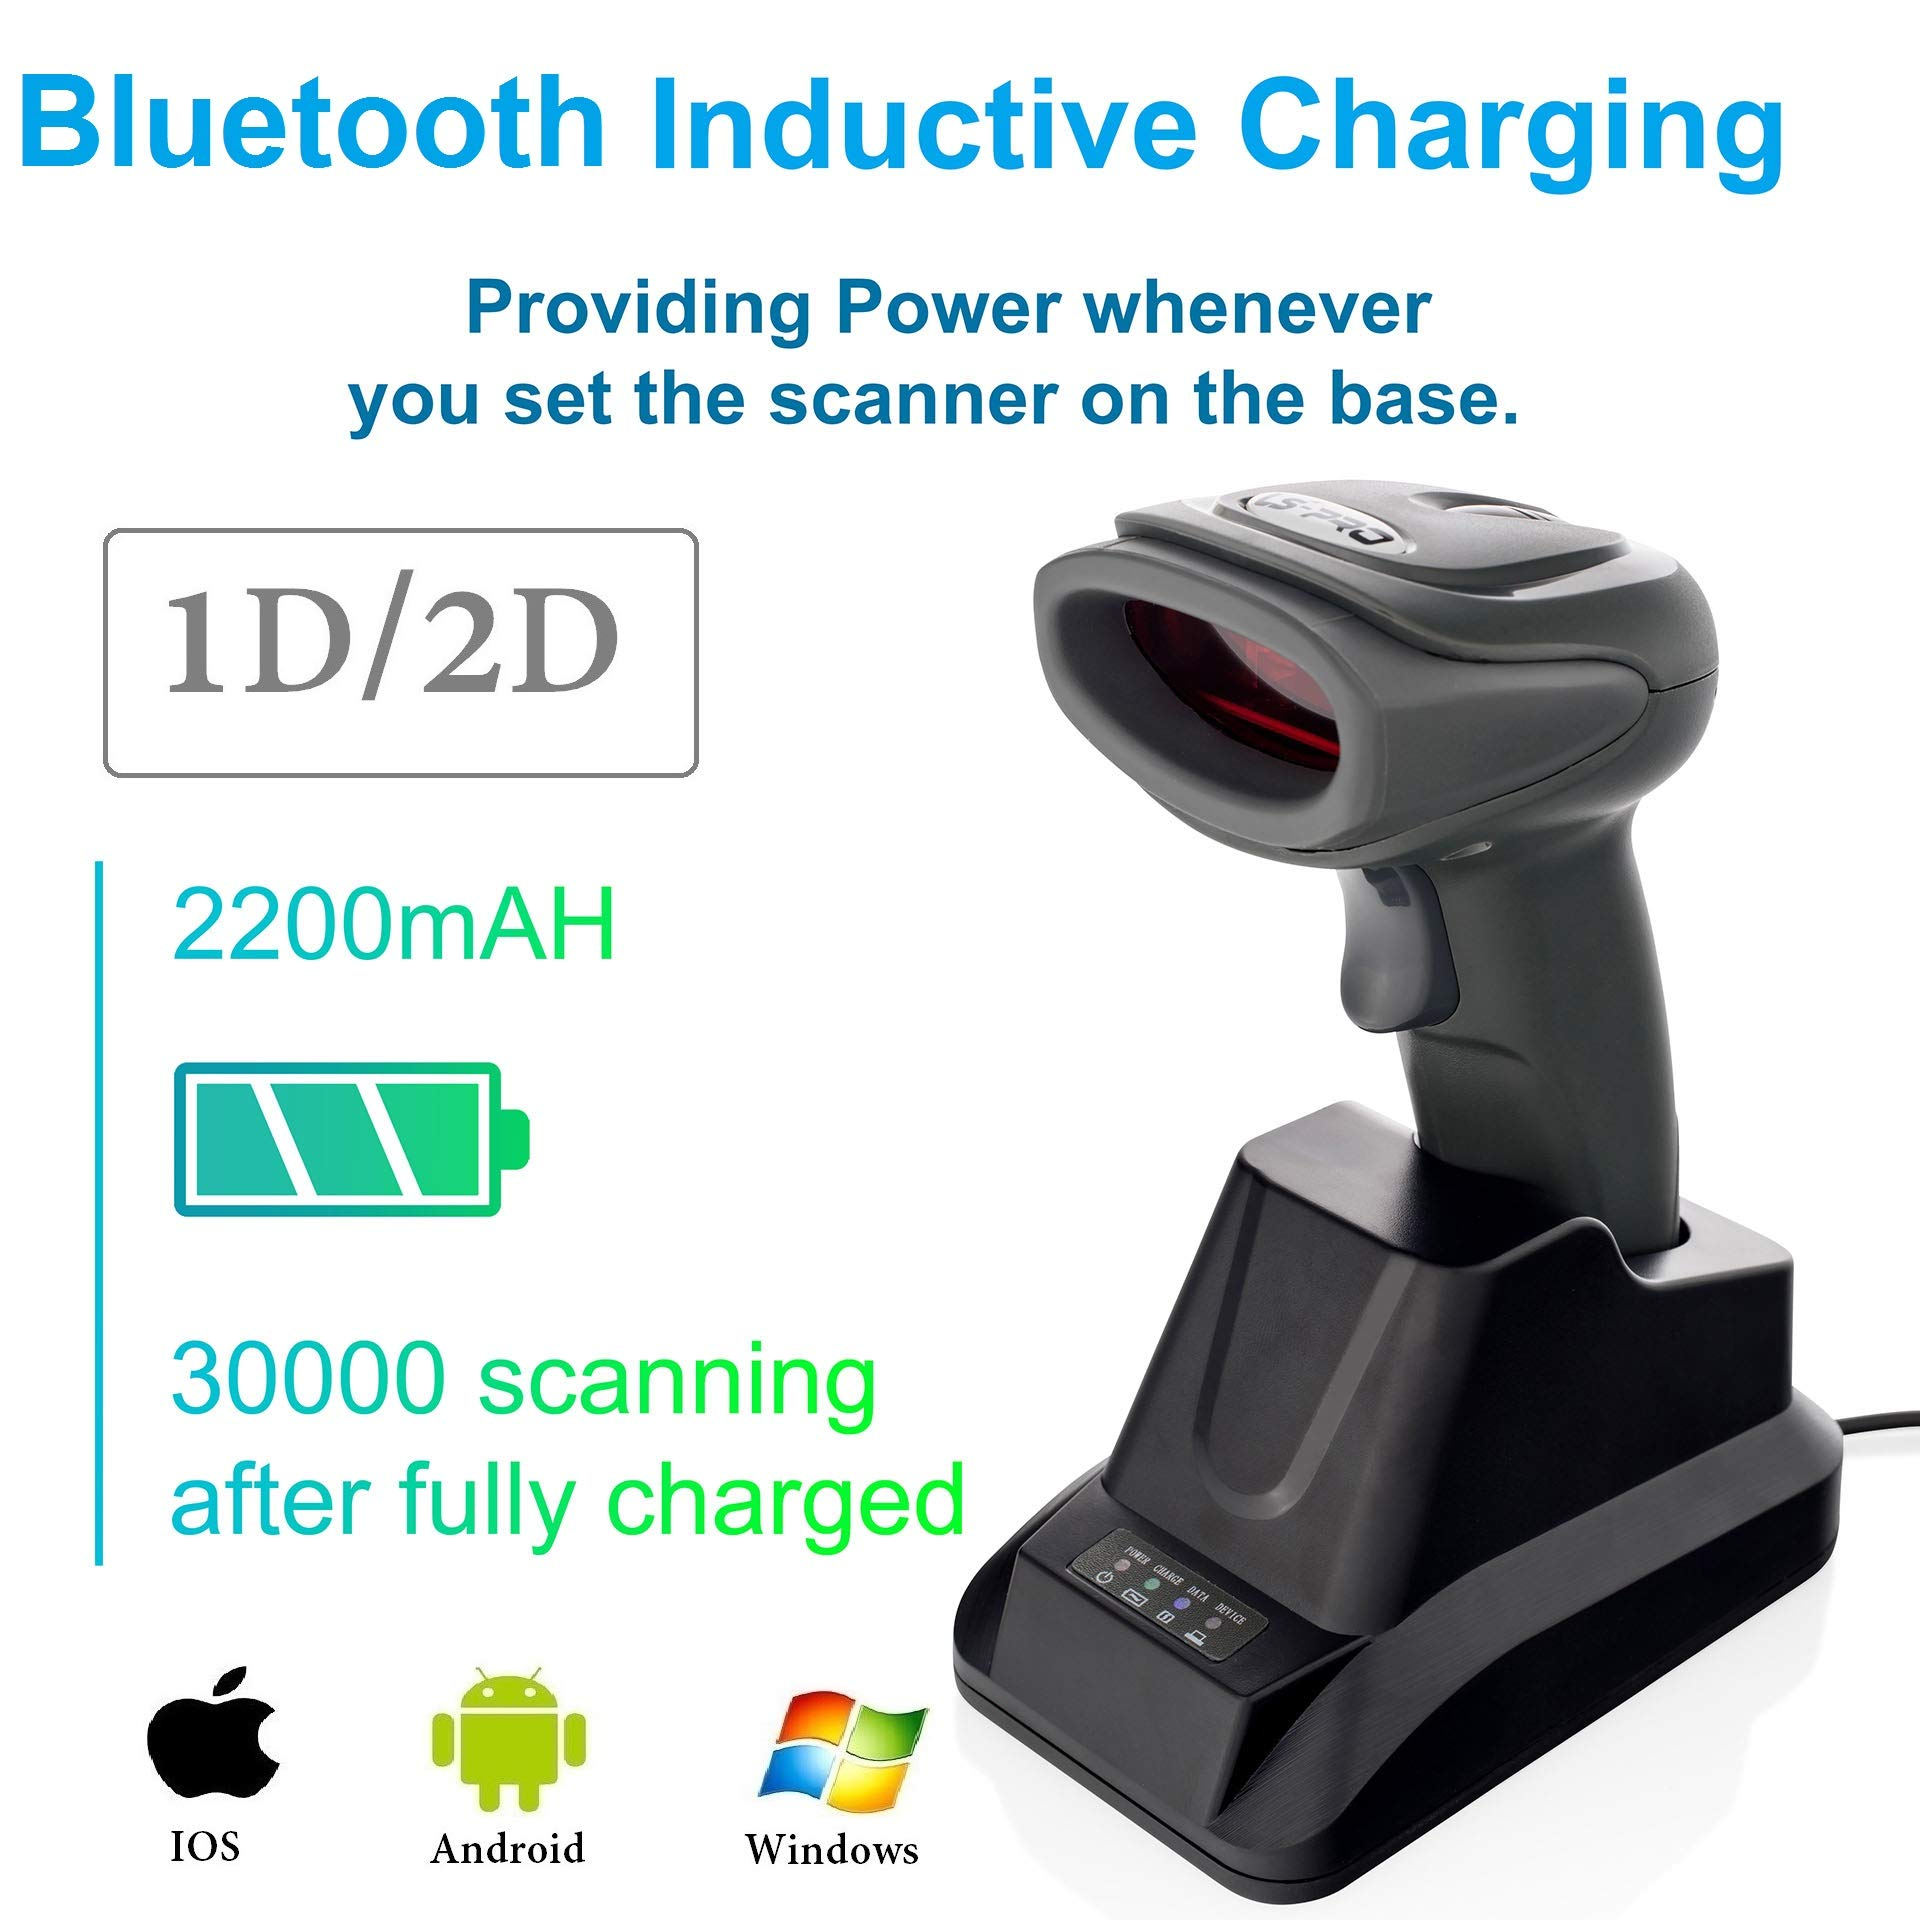 LS-PRO 2D QR wireless Bluetooth Barcode Scanner with USB Cradle Receiver Charging Base handheld 1D/2D Data matrix PDF417 image reader 100 ft Transmission Range long-life Battery 2200mA,1 Year Warranty